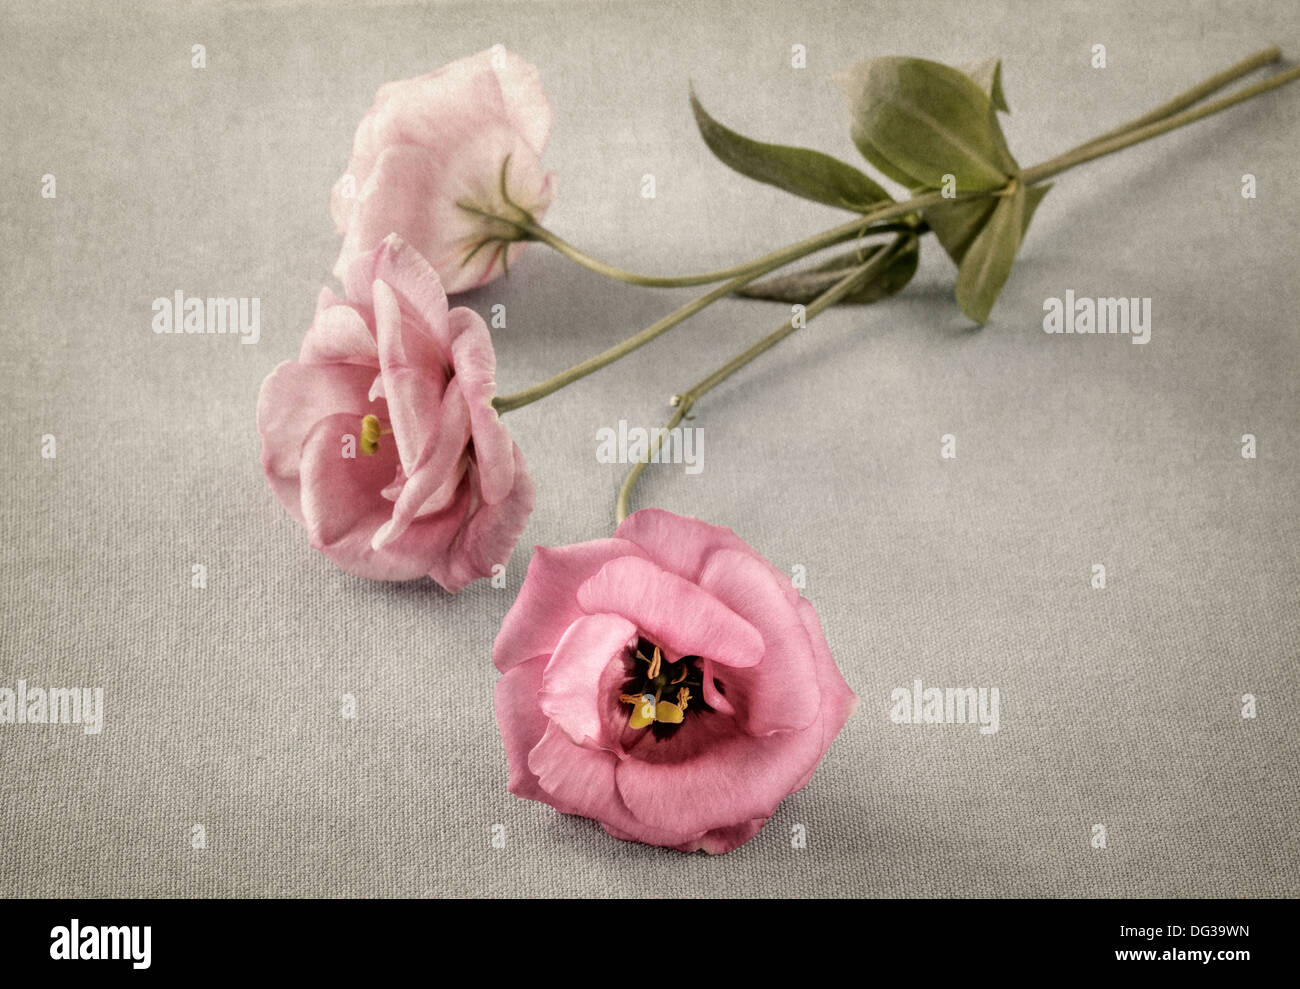 Three pink flowers with texture overlay - Stock Image